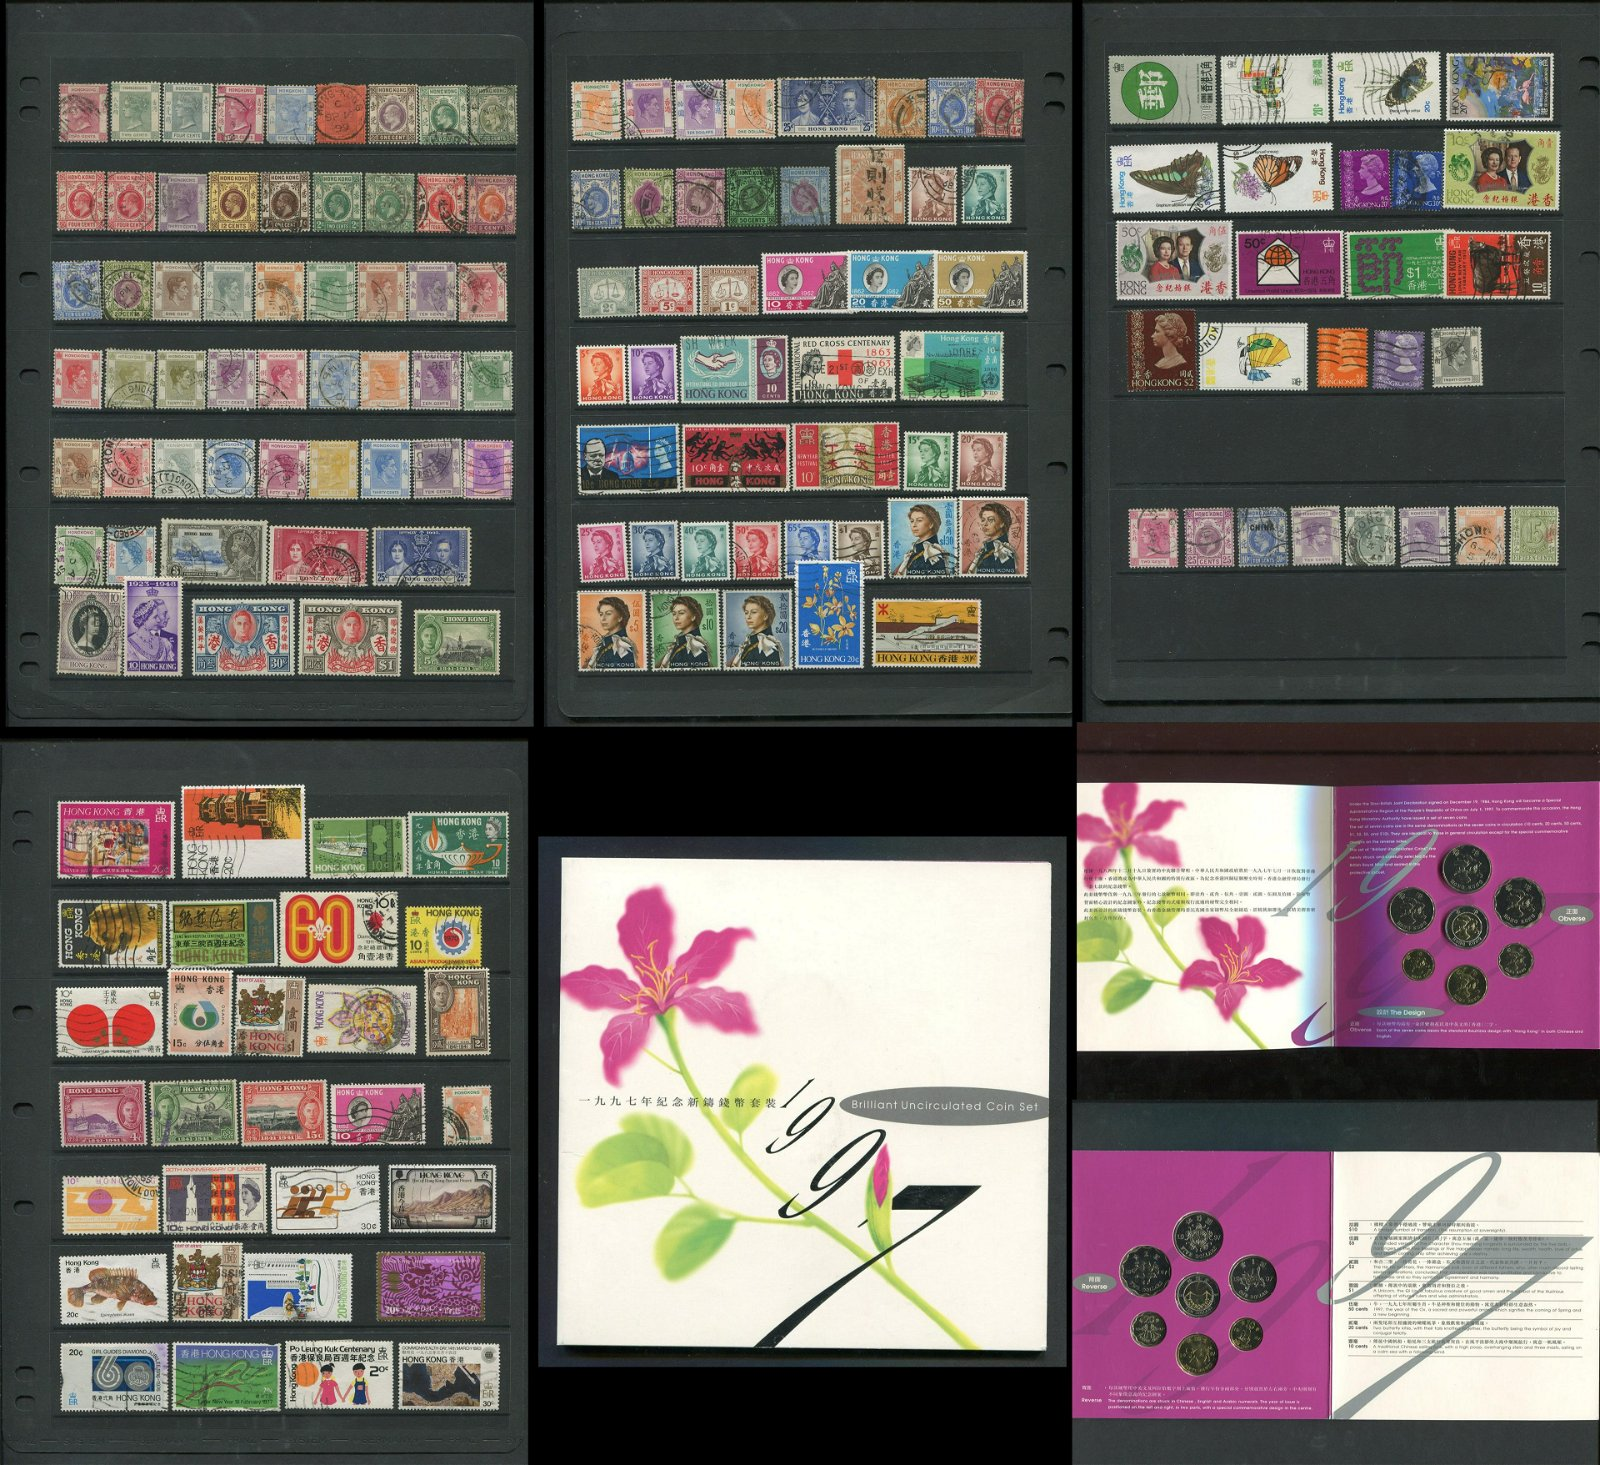 Hong Kong Stamp and Coin Collection